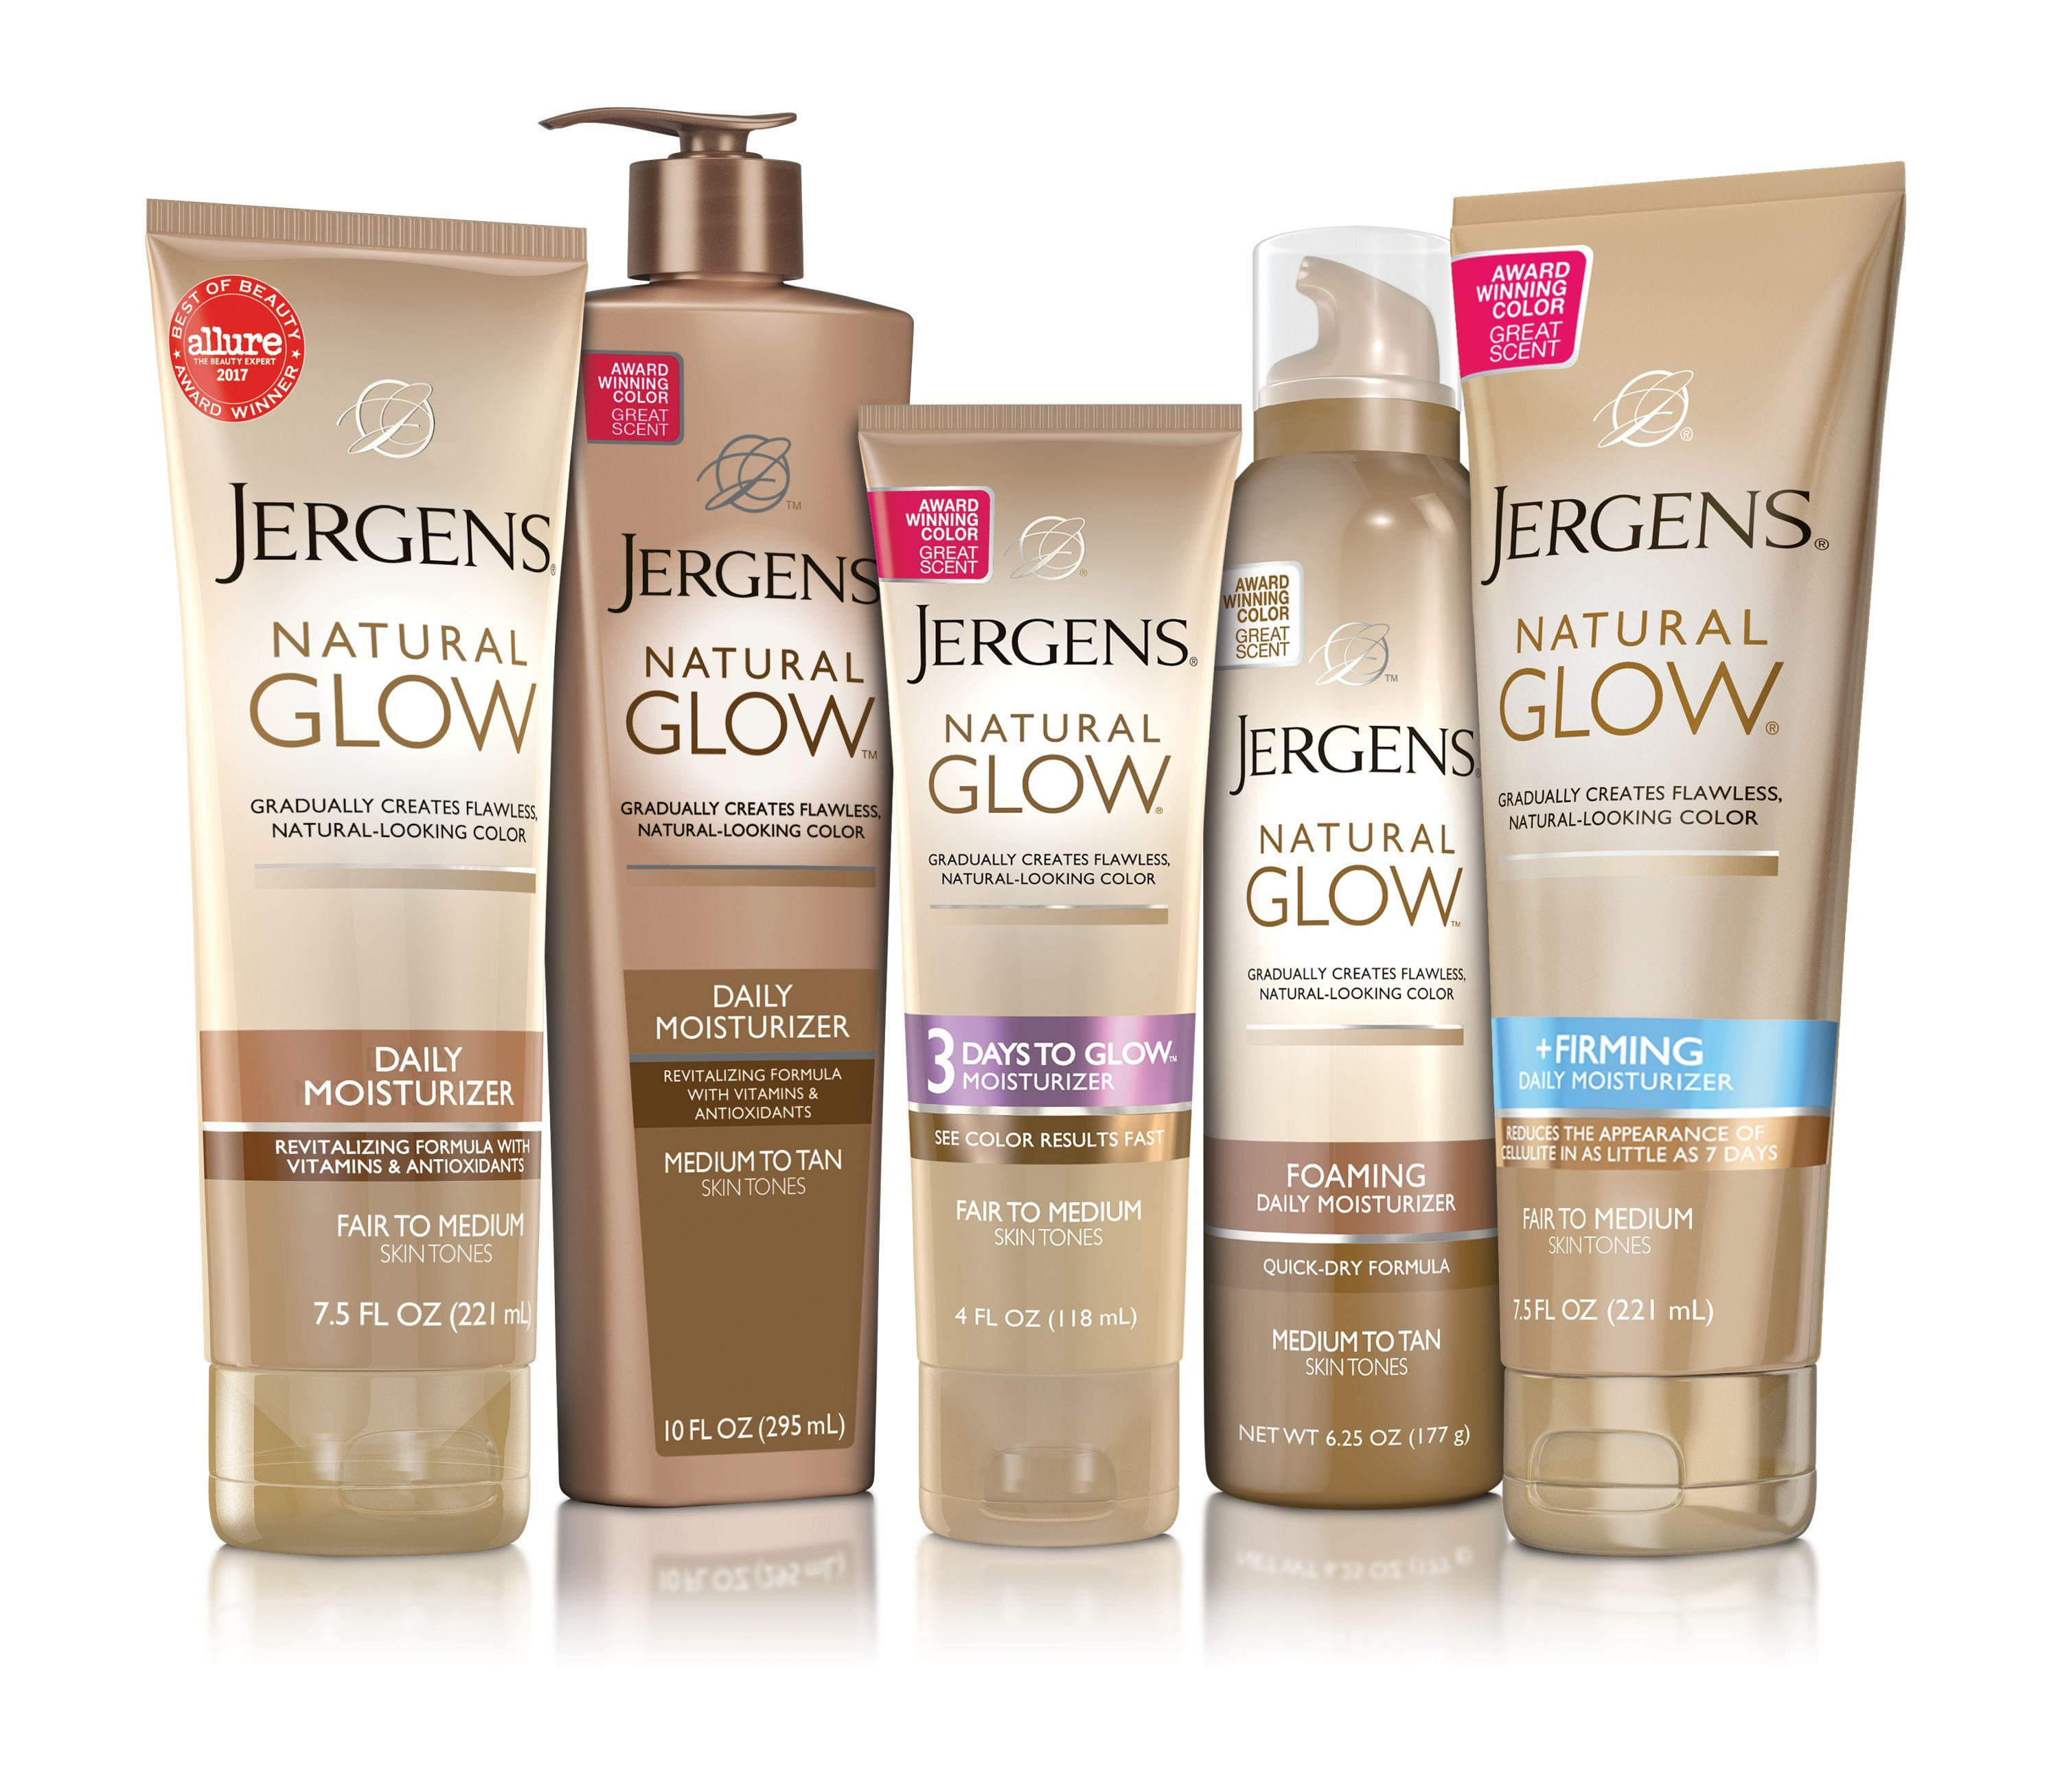 Natural Glow +Firming Daily Moisturizer by jergens #17